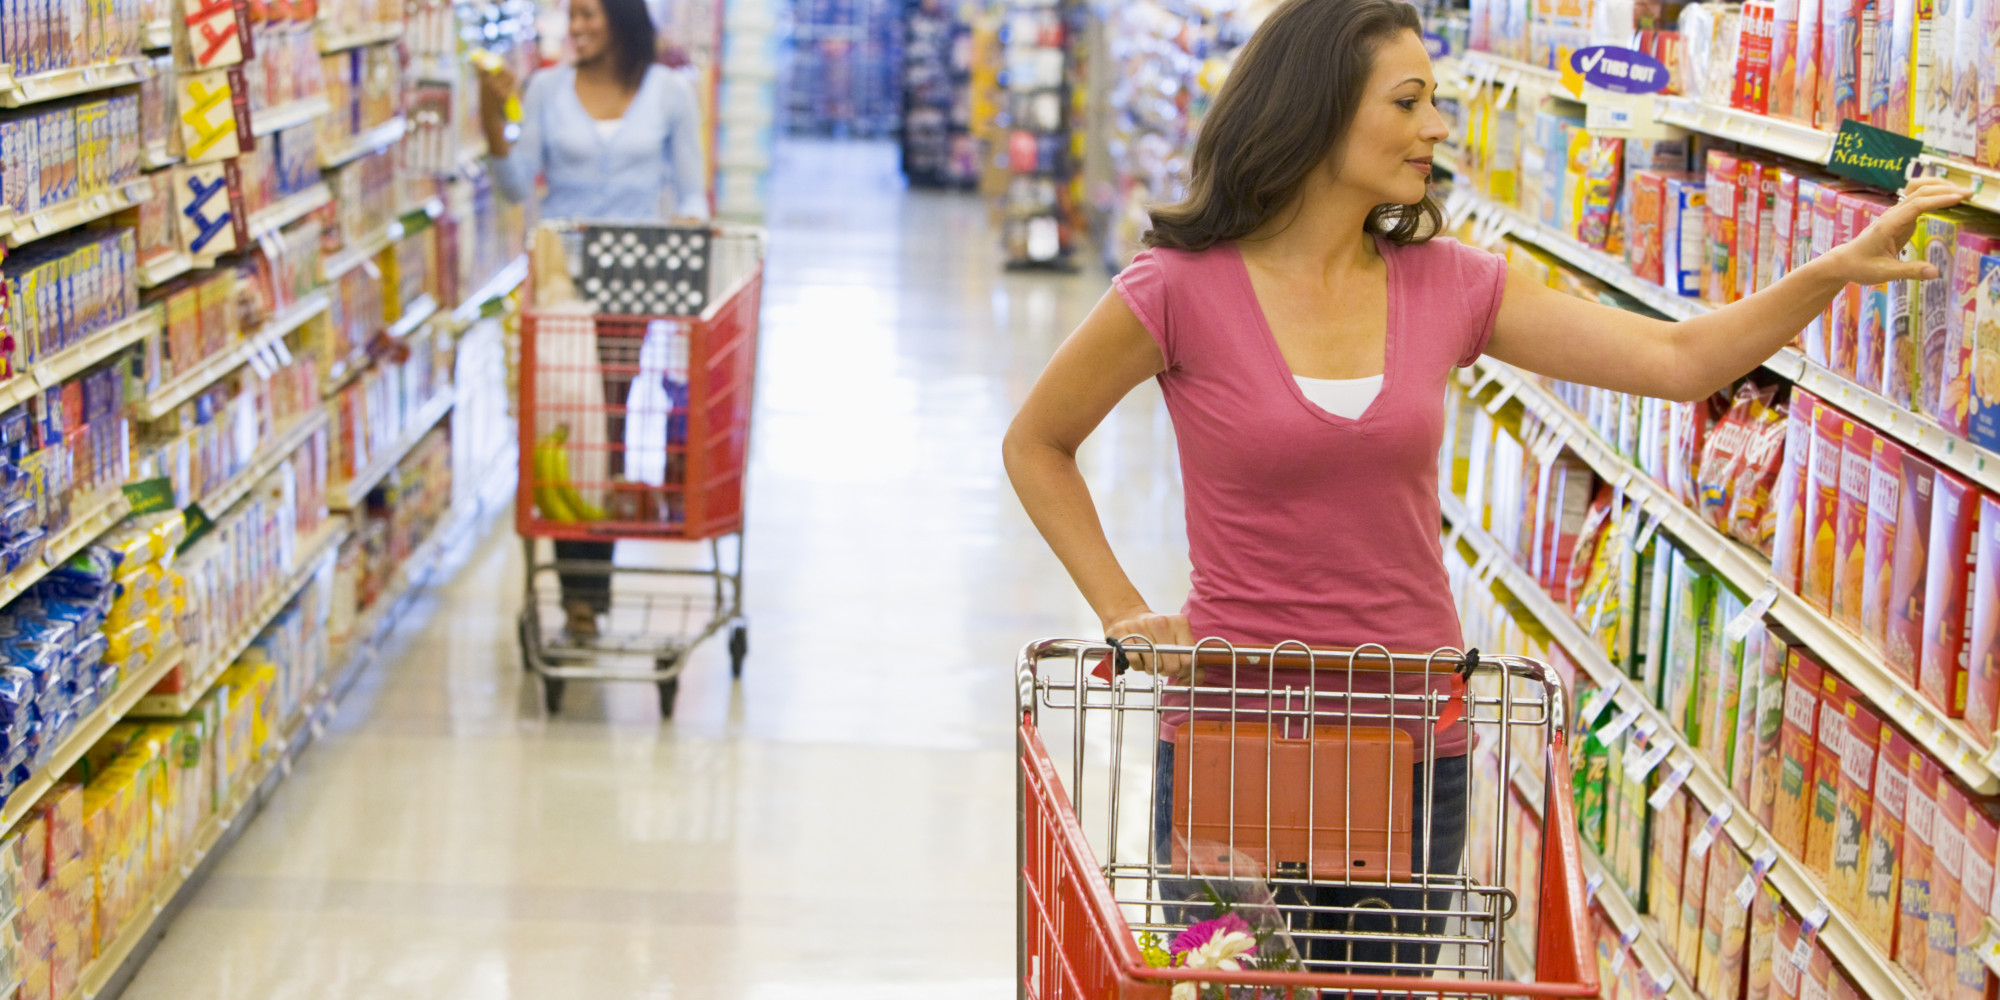 Buy Food The Food You Buy At The Grocery Store May Not Be Safe To